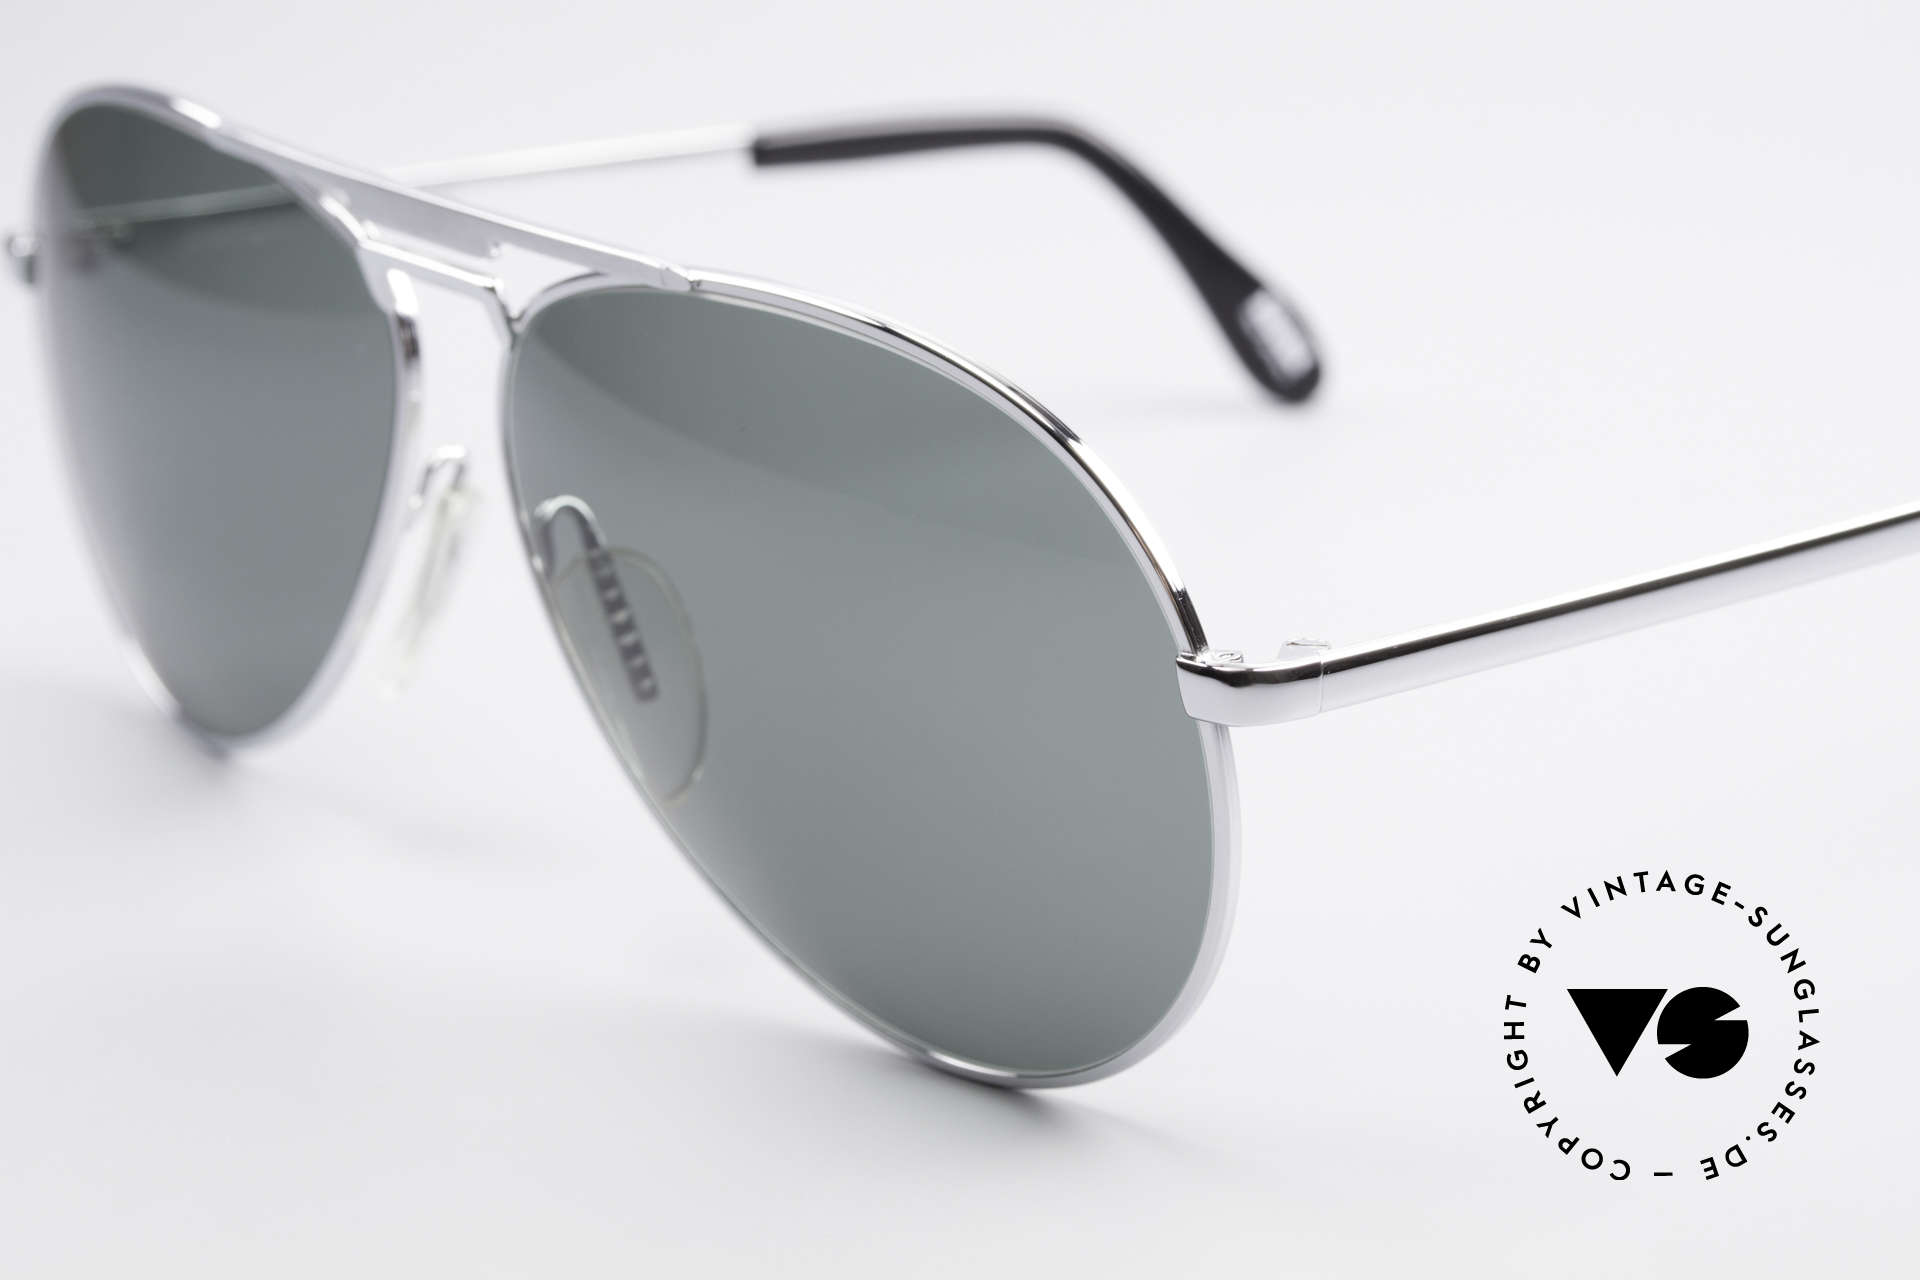 Zeiss 9075 XXL Vintage Men's Sunglasses, but in XX-LARGE size: the metal frame is 152mm wide, Made for Men